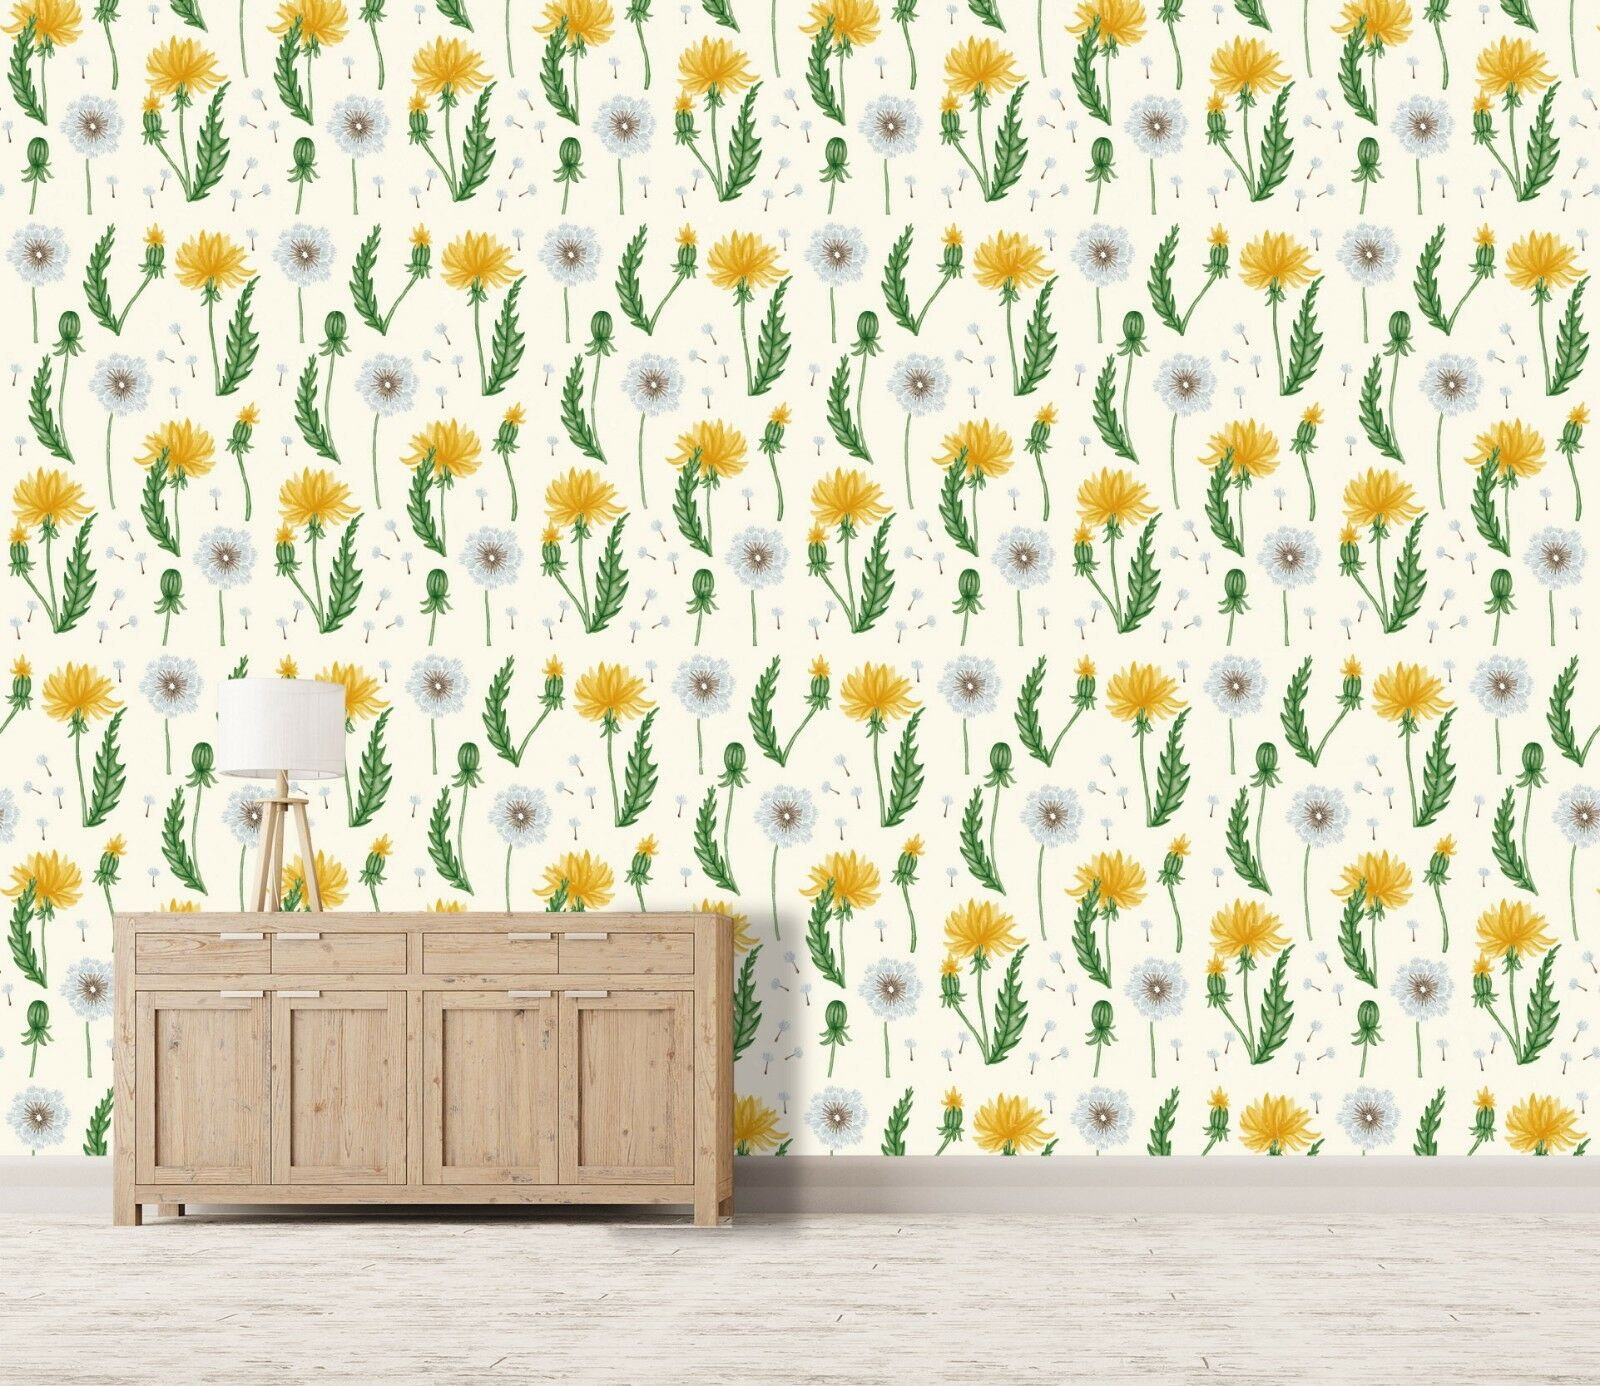 3D Cute Flowers 232 Wallpaper Mural Print Wall Indoor Wallpaper Murals UK Summer